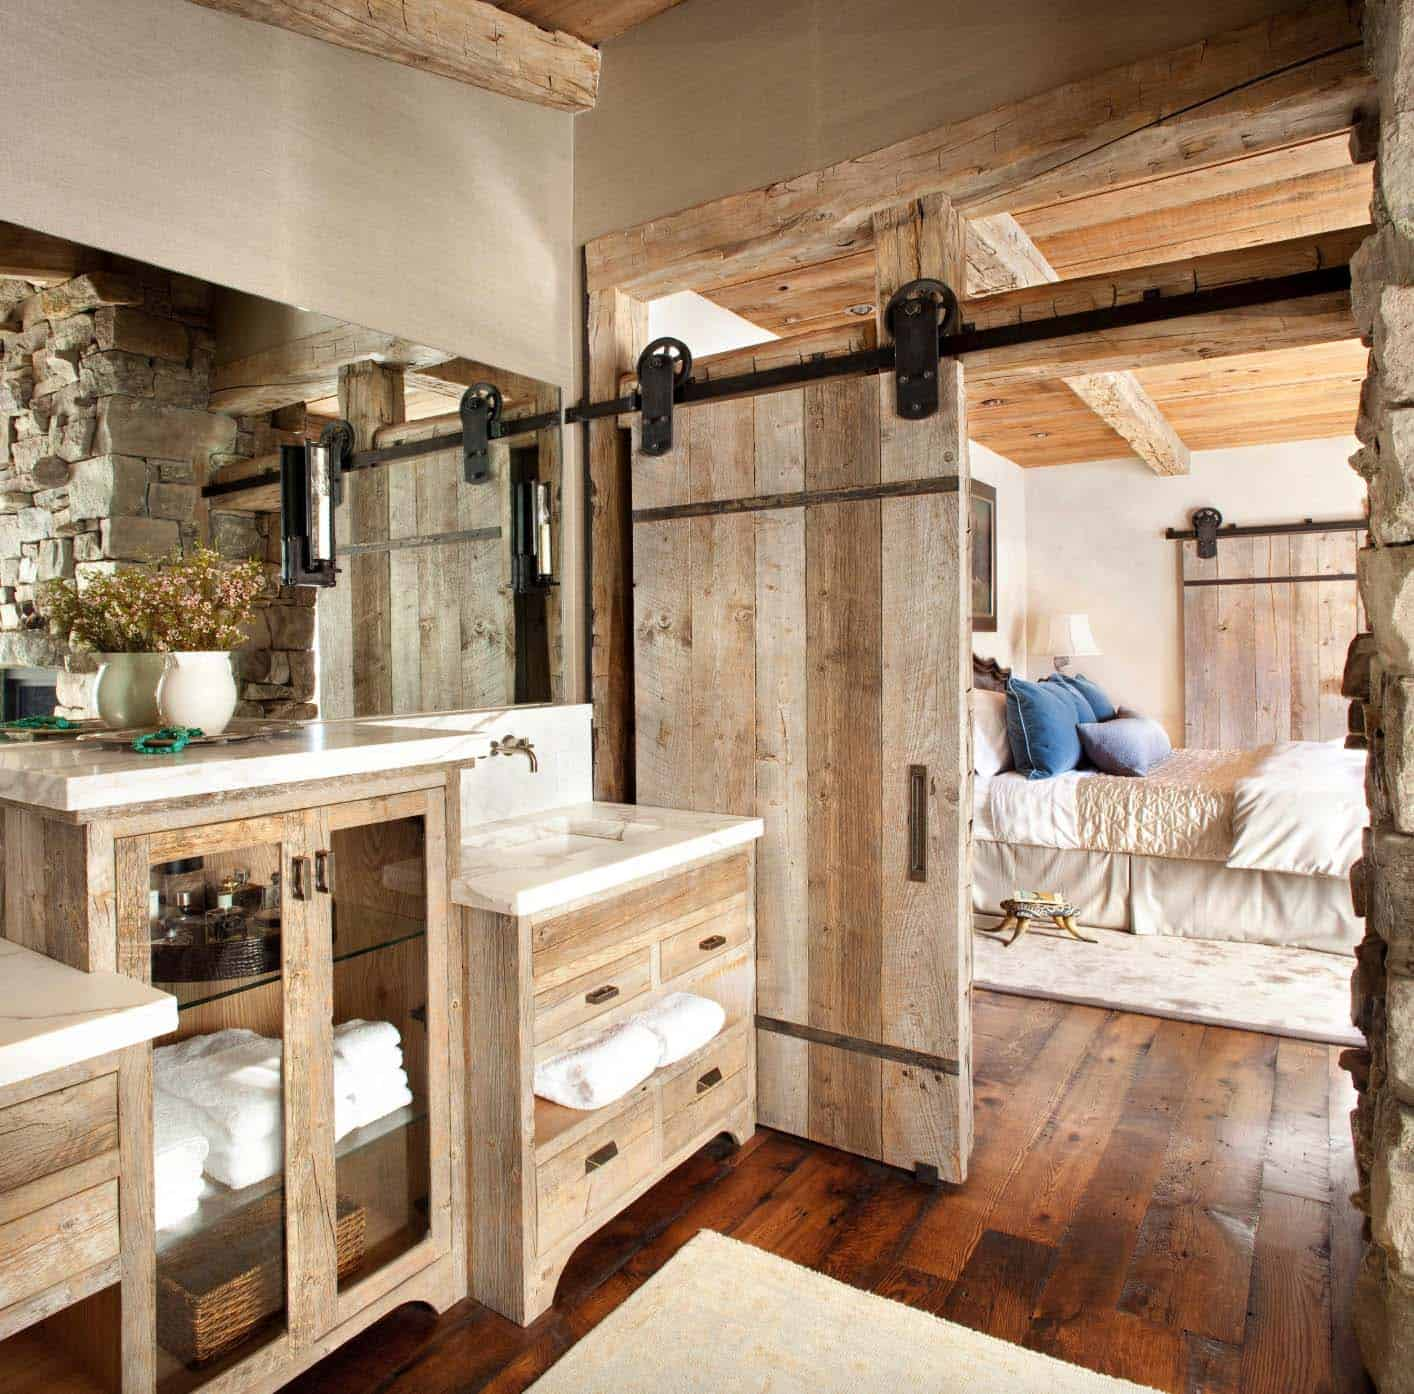 mountain-rustic-bathroom